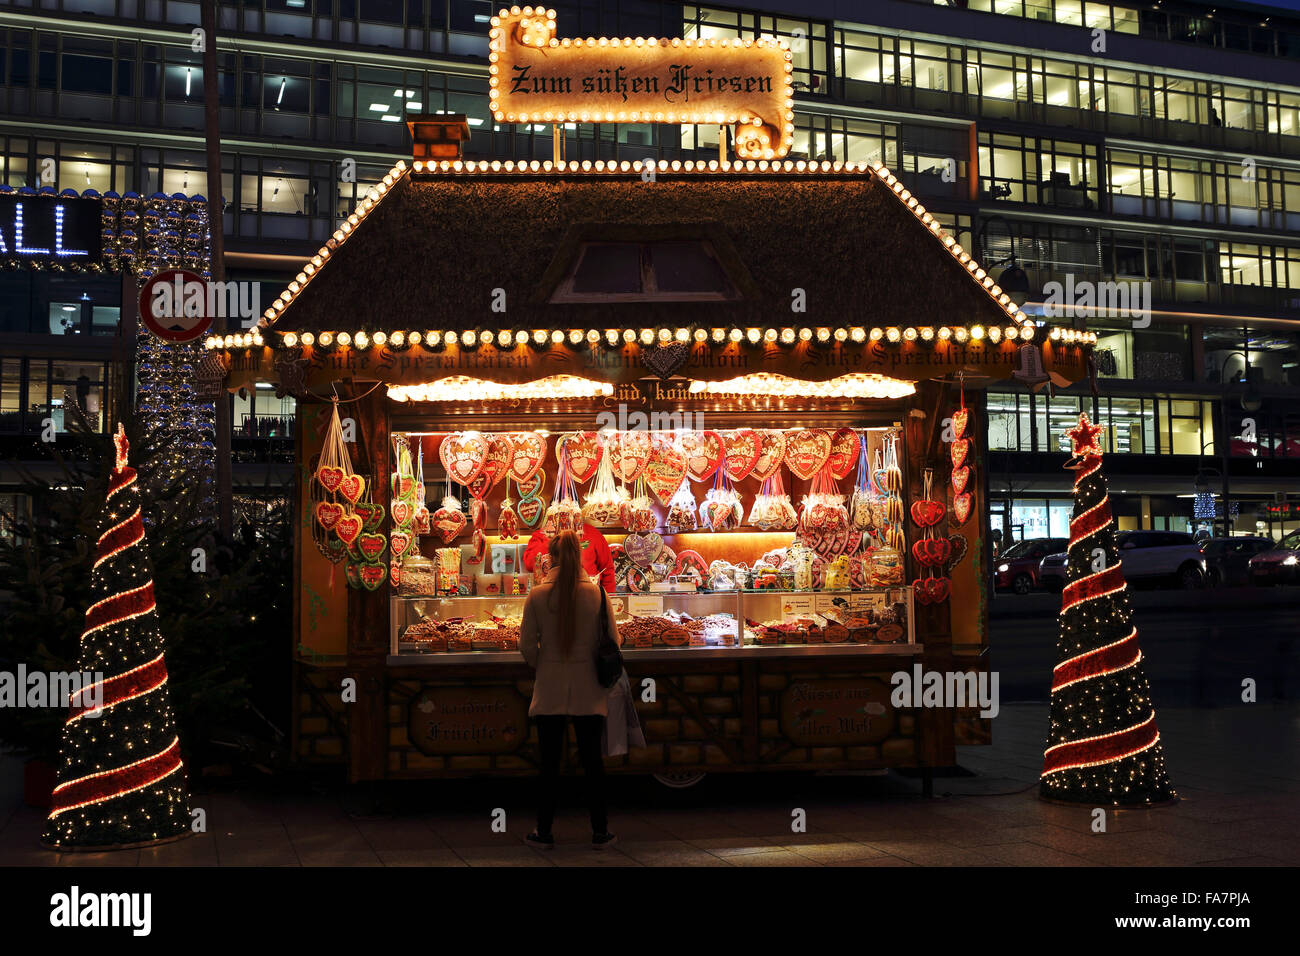 Gingerbread hearts on sale at the City Weihnachtsmarkt am Gedachtniskirche Christmas market on Ku'damm in Berlin, - Stock Image